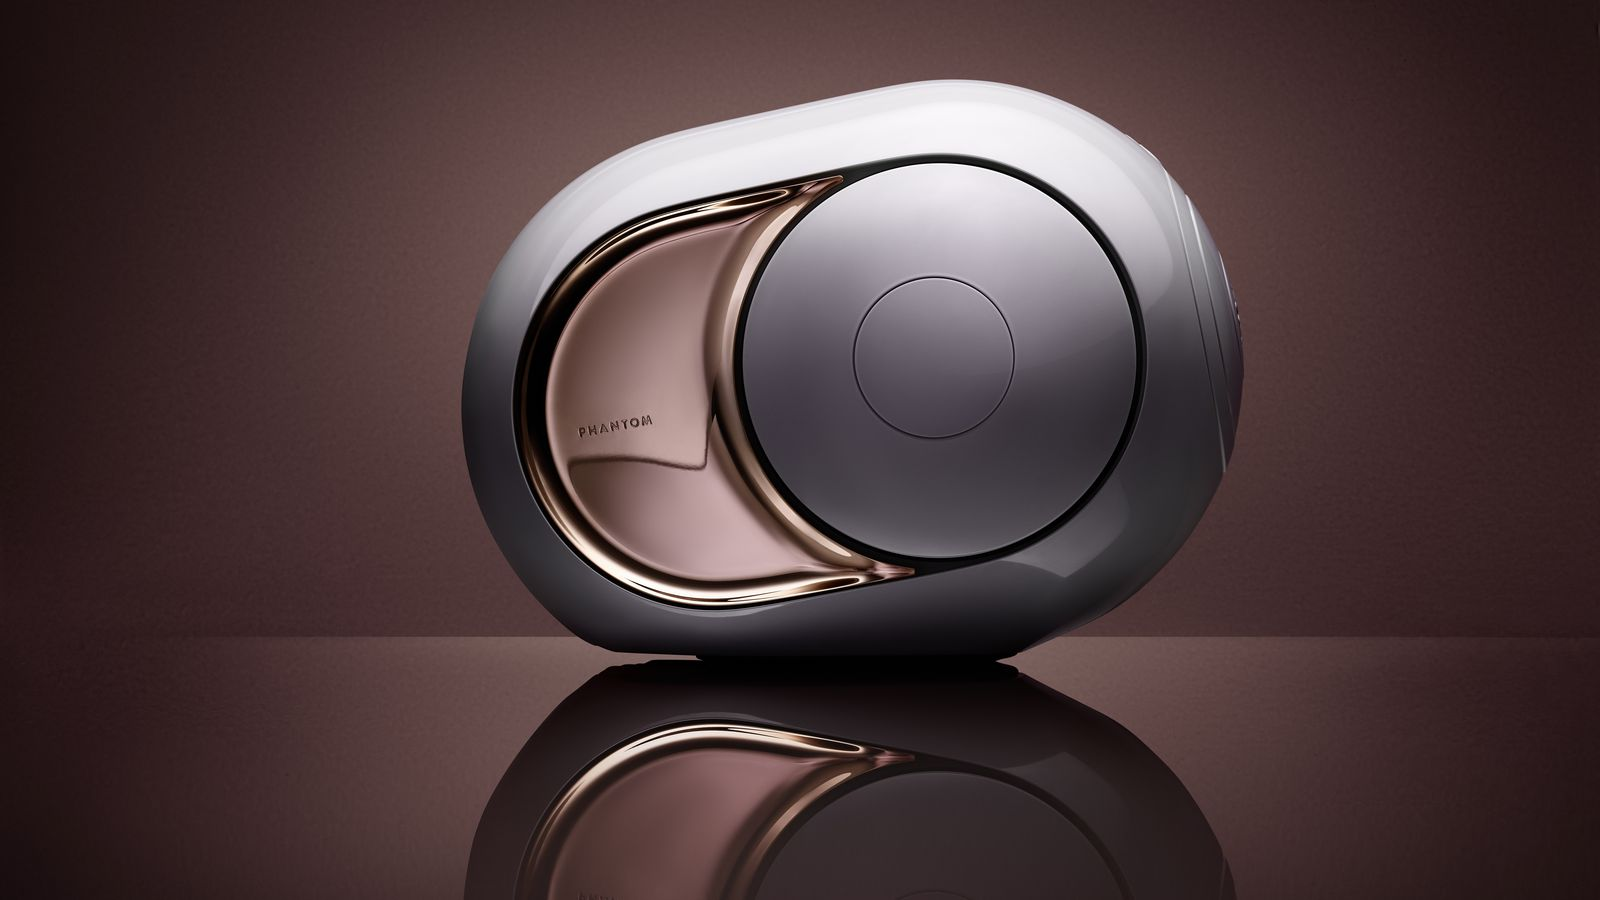 Devialet just doubled the power of its ridiculously loud speaker